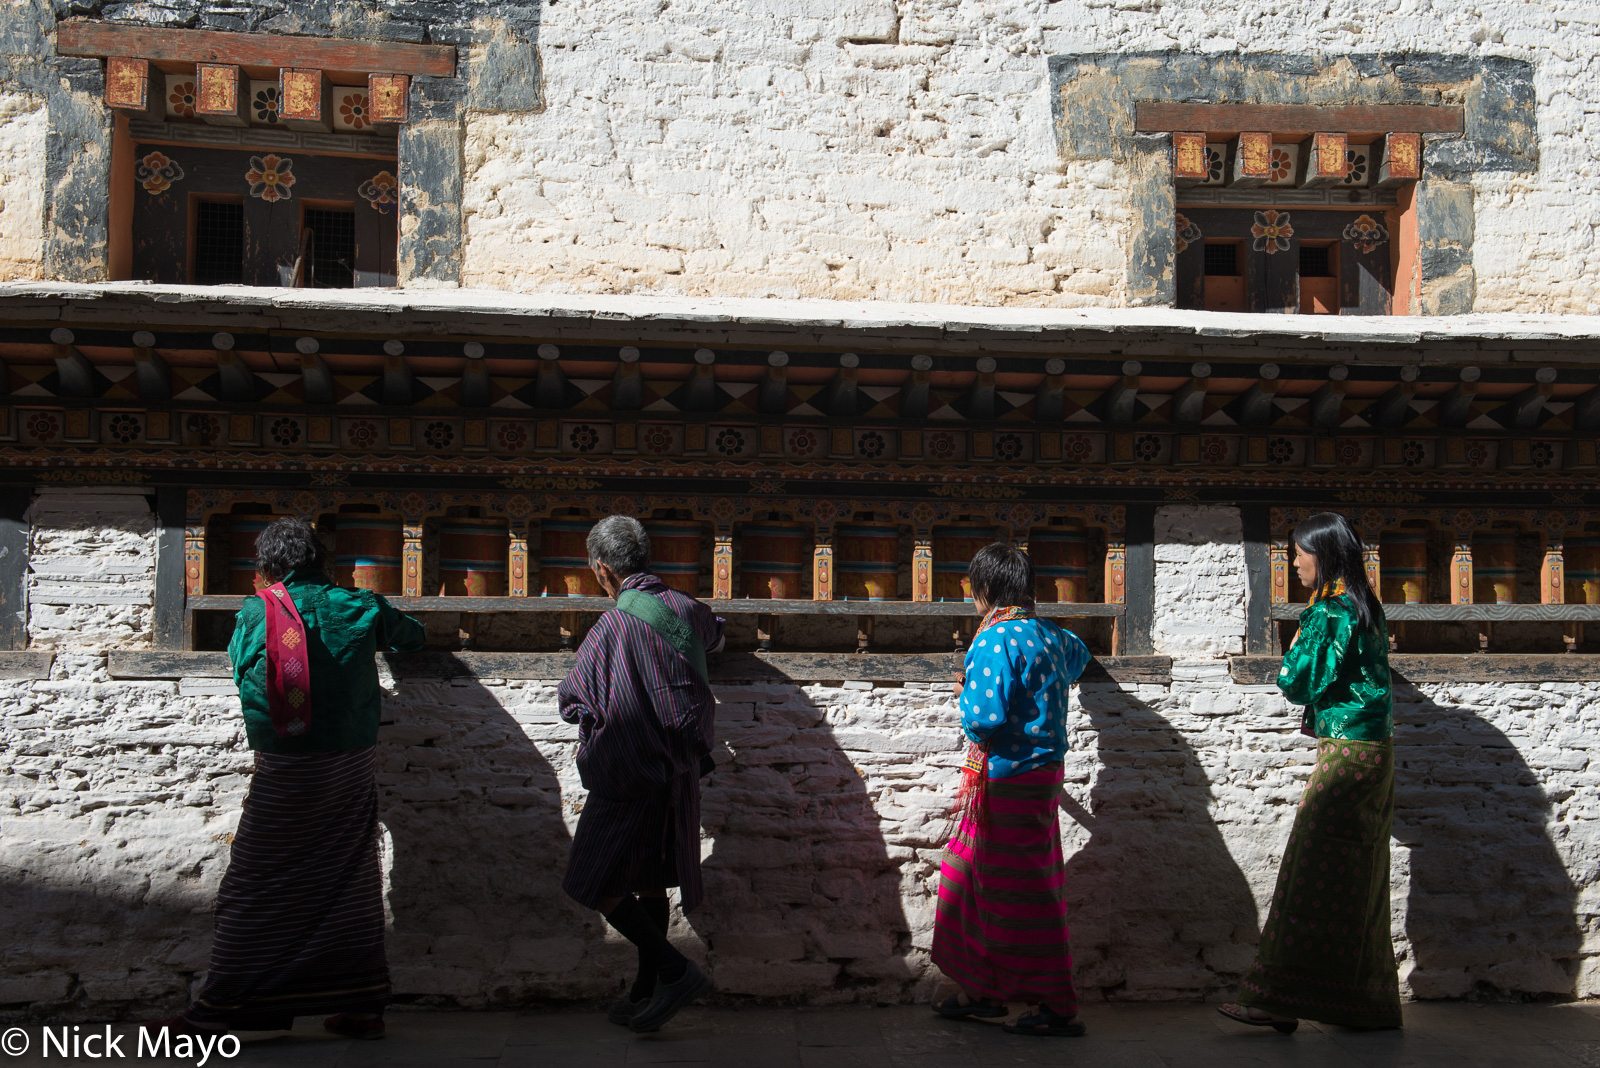 Buddhists turning the prayer wheels at Mongar dzong during the annual tshechu.